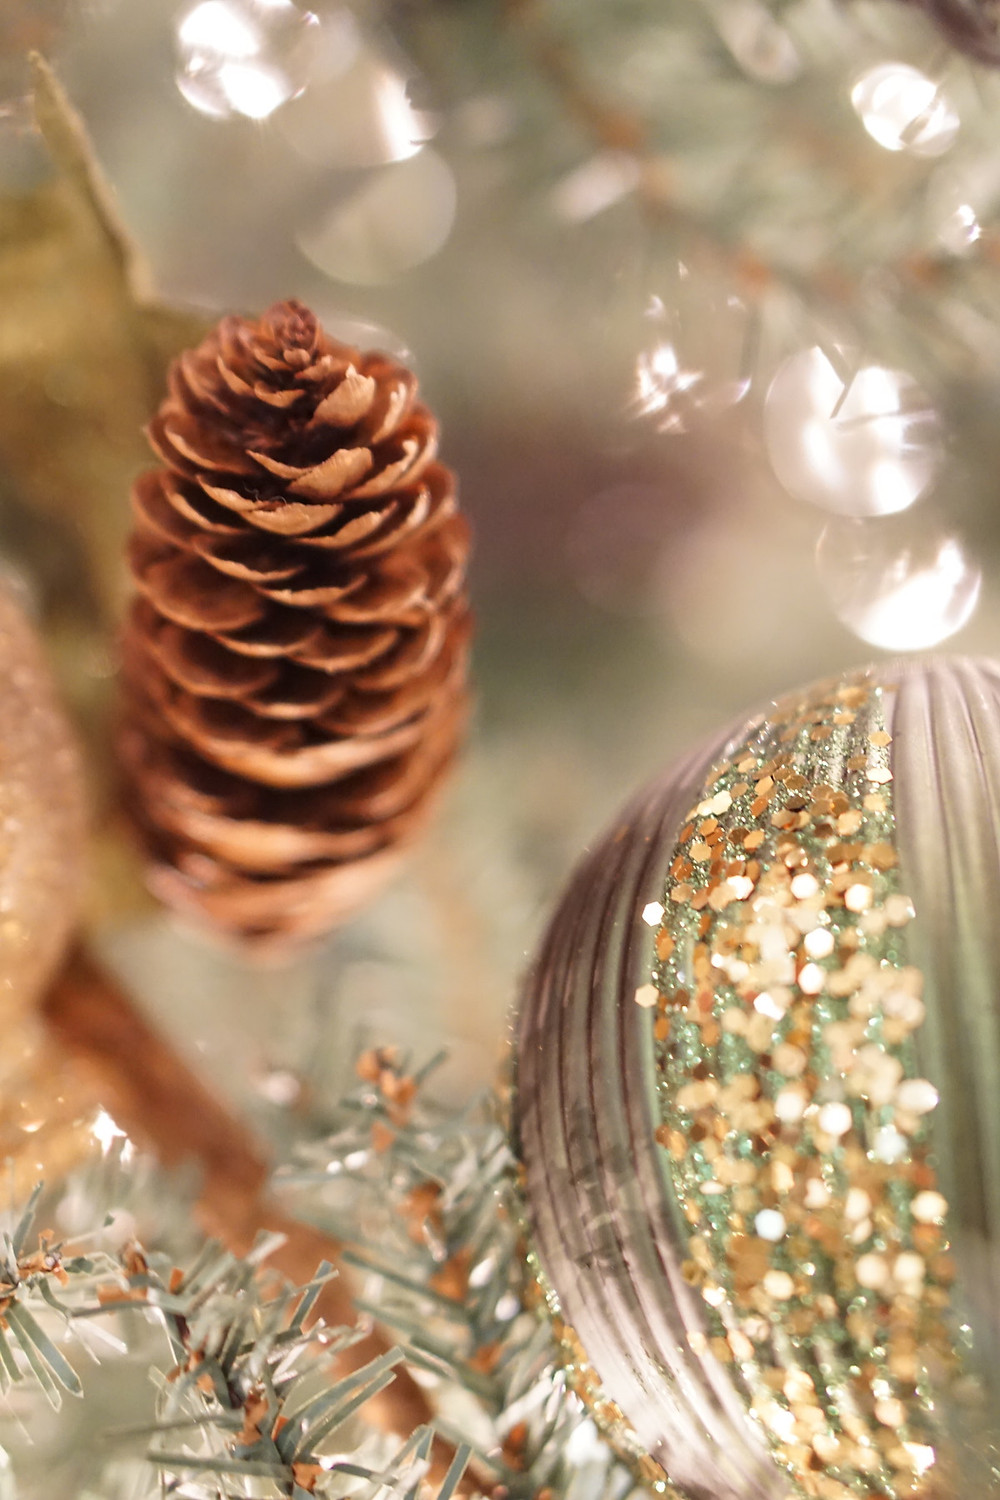 Peaceful bokeh holiday decorations and winter pinecone